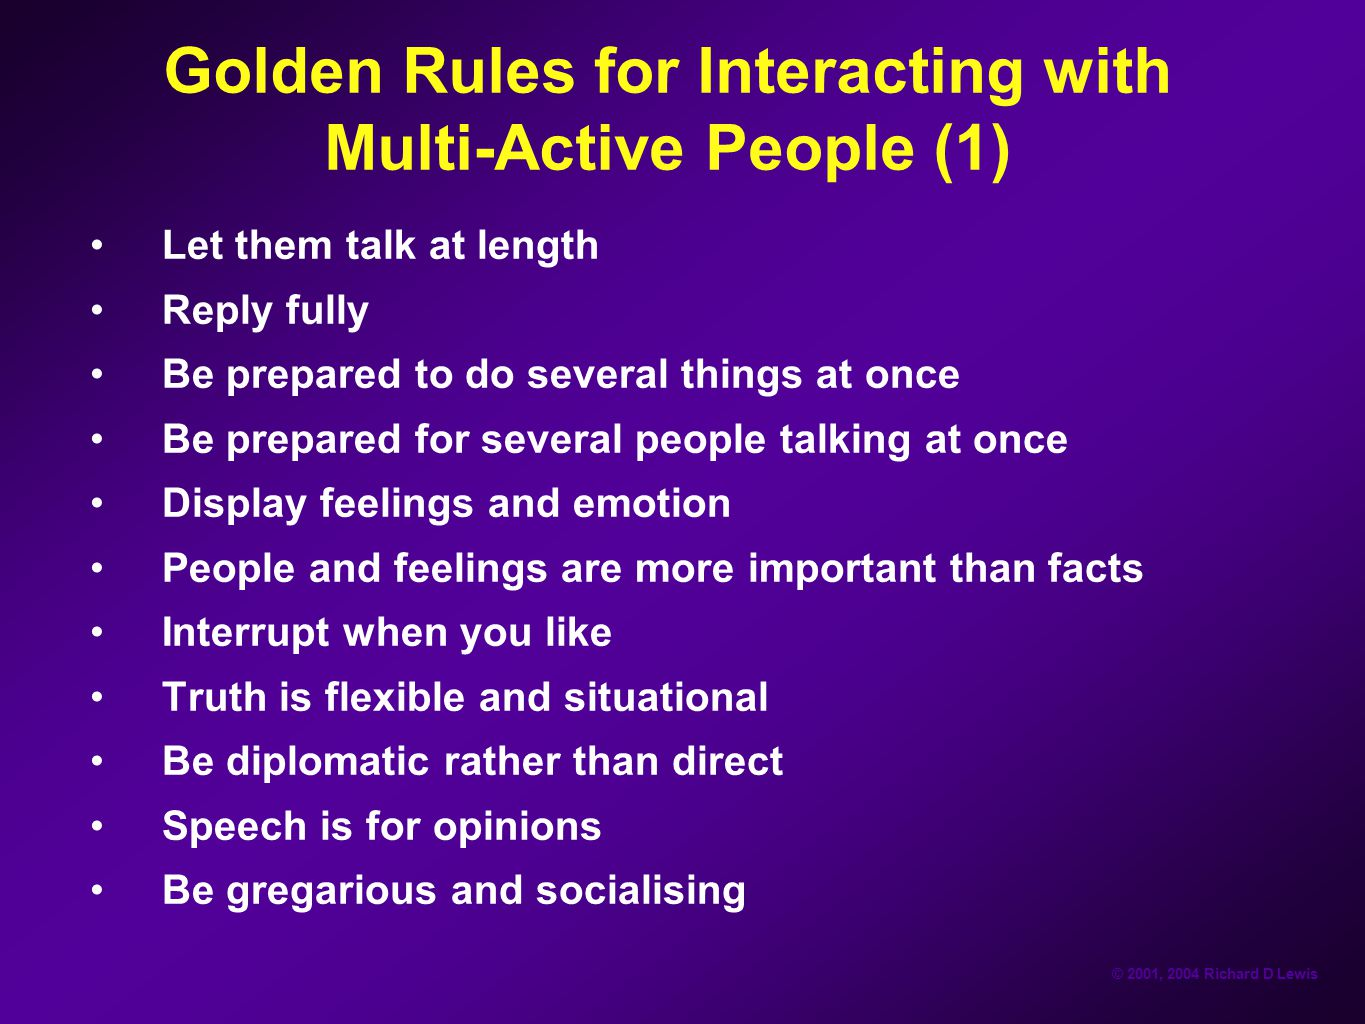 Golden Rules for Interacting with Multi-Active People (1)